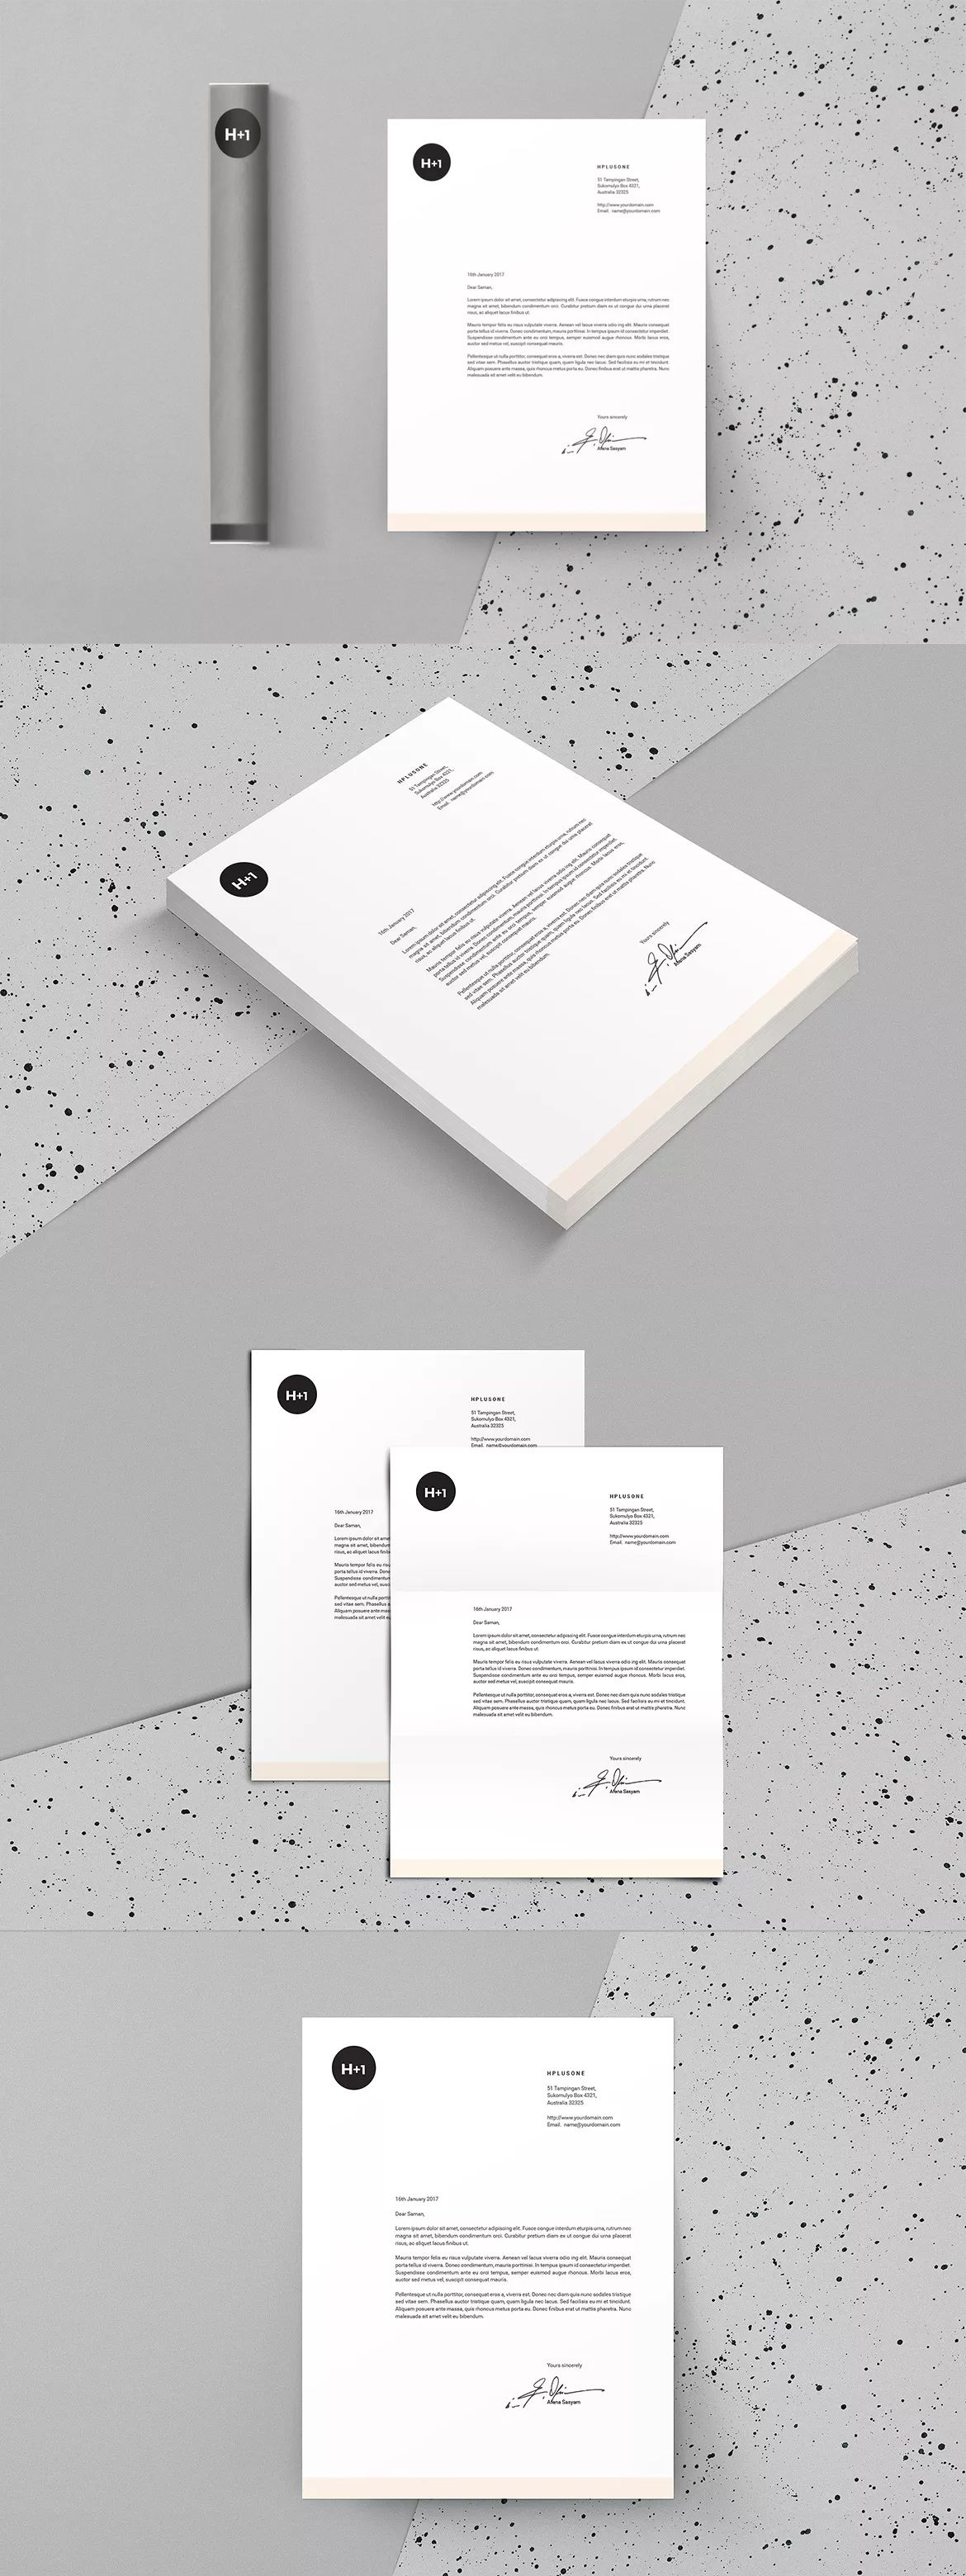 Letterhead template indesign indd us letter and a4 size letterhead template indesign indd us letter and a4 size spiritdancerdesigns Gallery